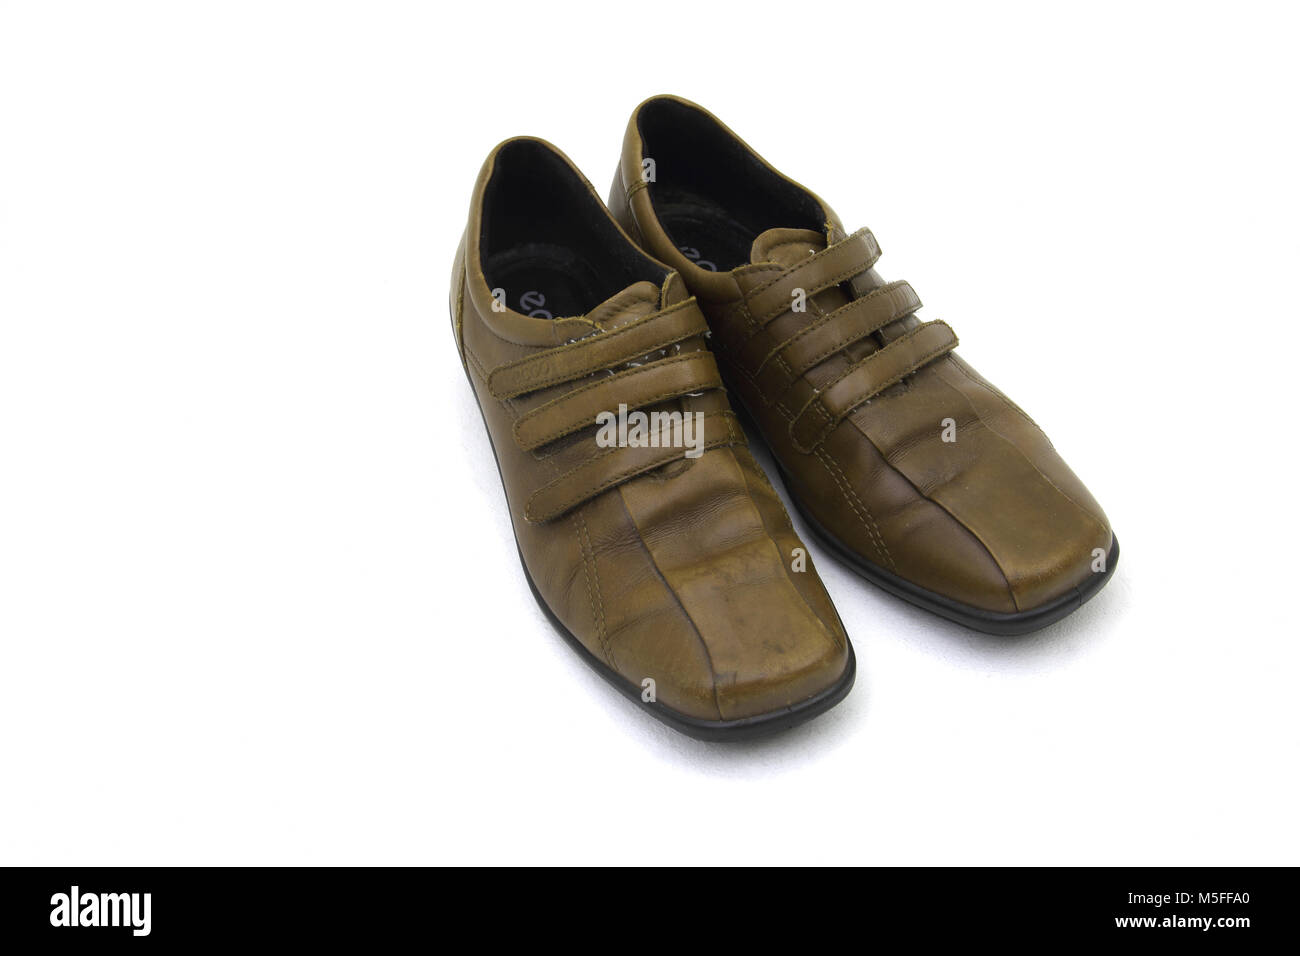 Ecco Brown Leather Shoes With Velcro Straps - Stock Image